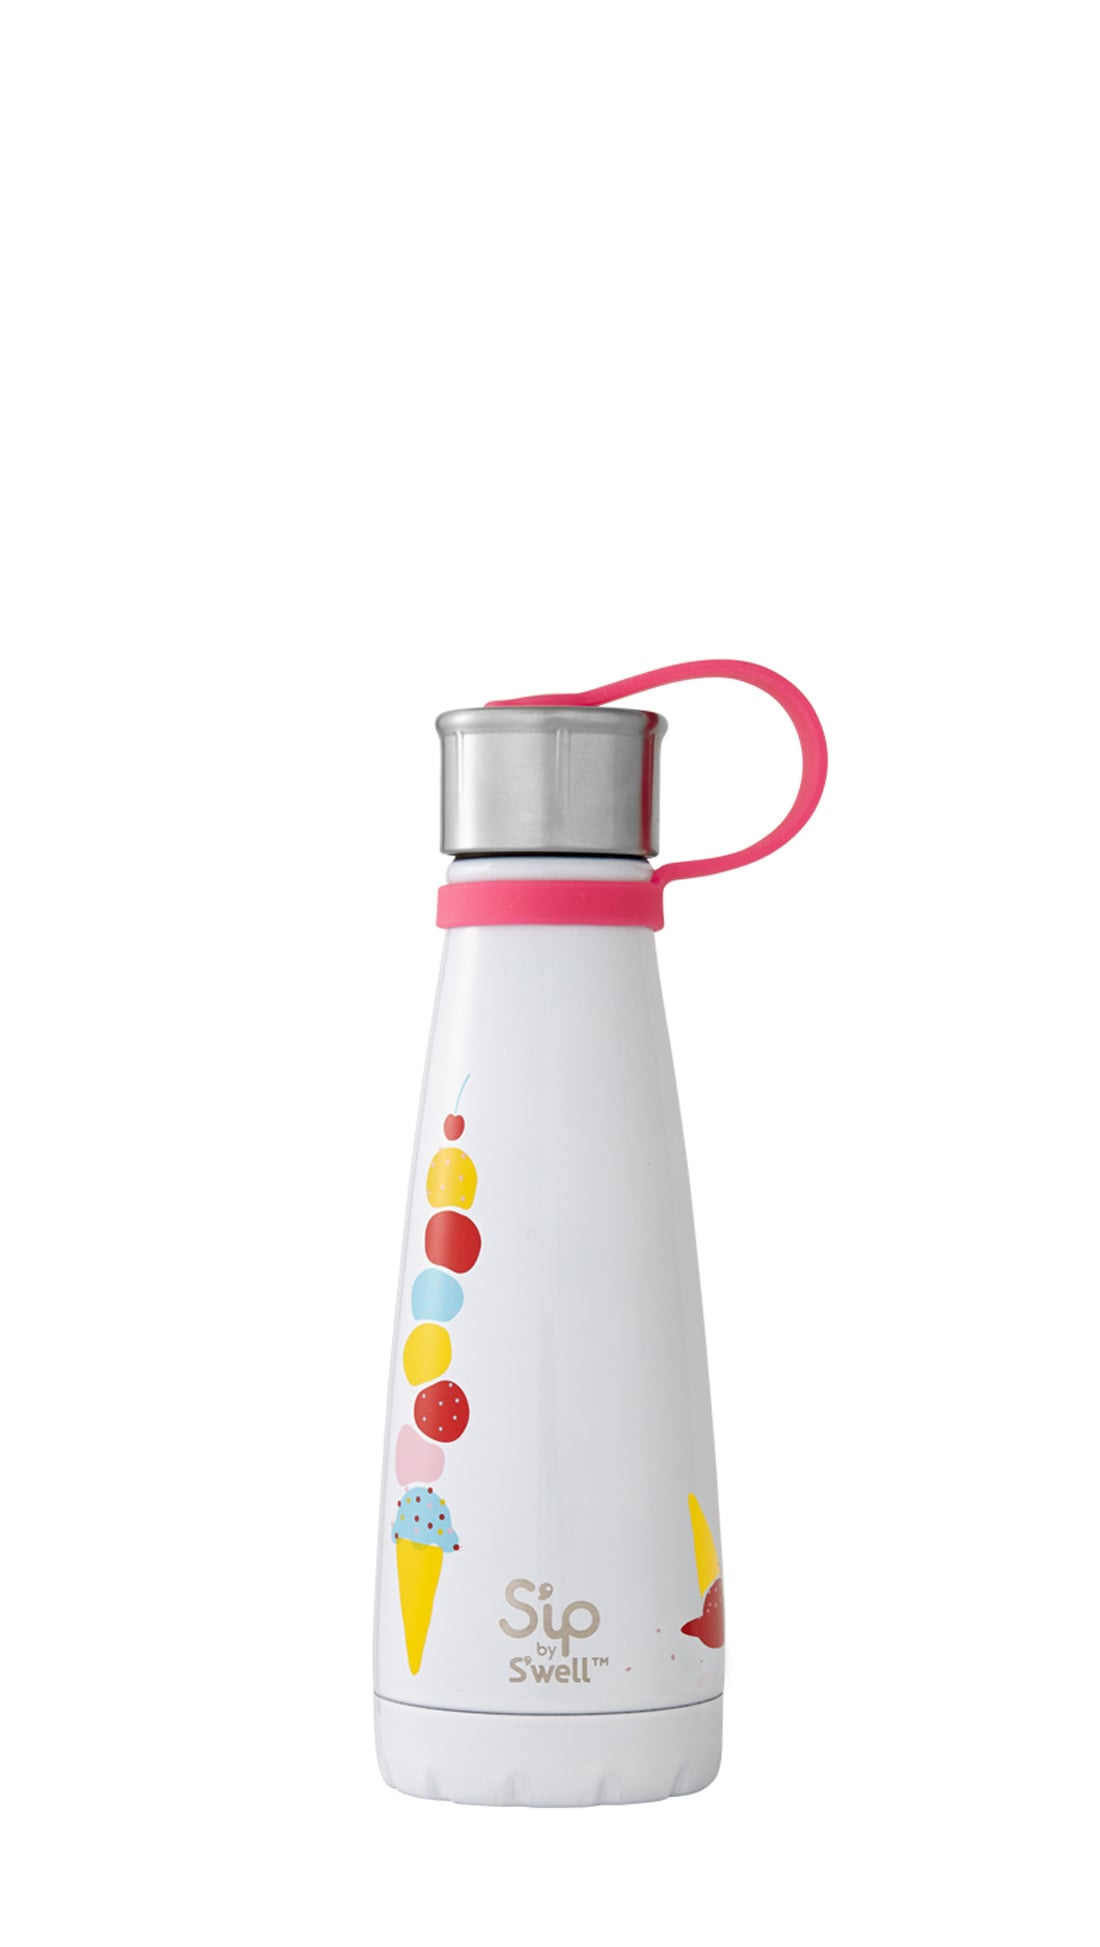 New Sip By Swell Insulated Stainless Steel Water Bottle 15 Oz,Cold /& Hot Drinks